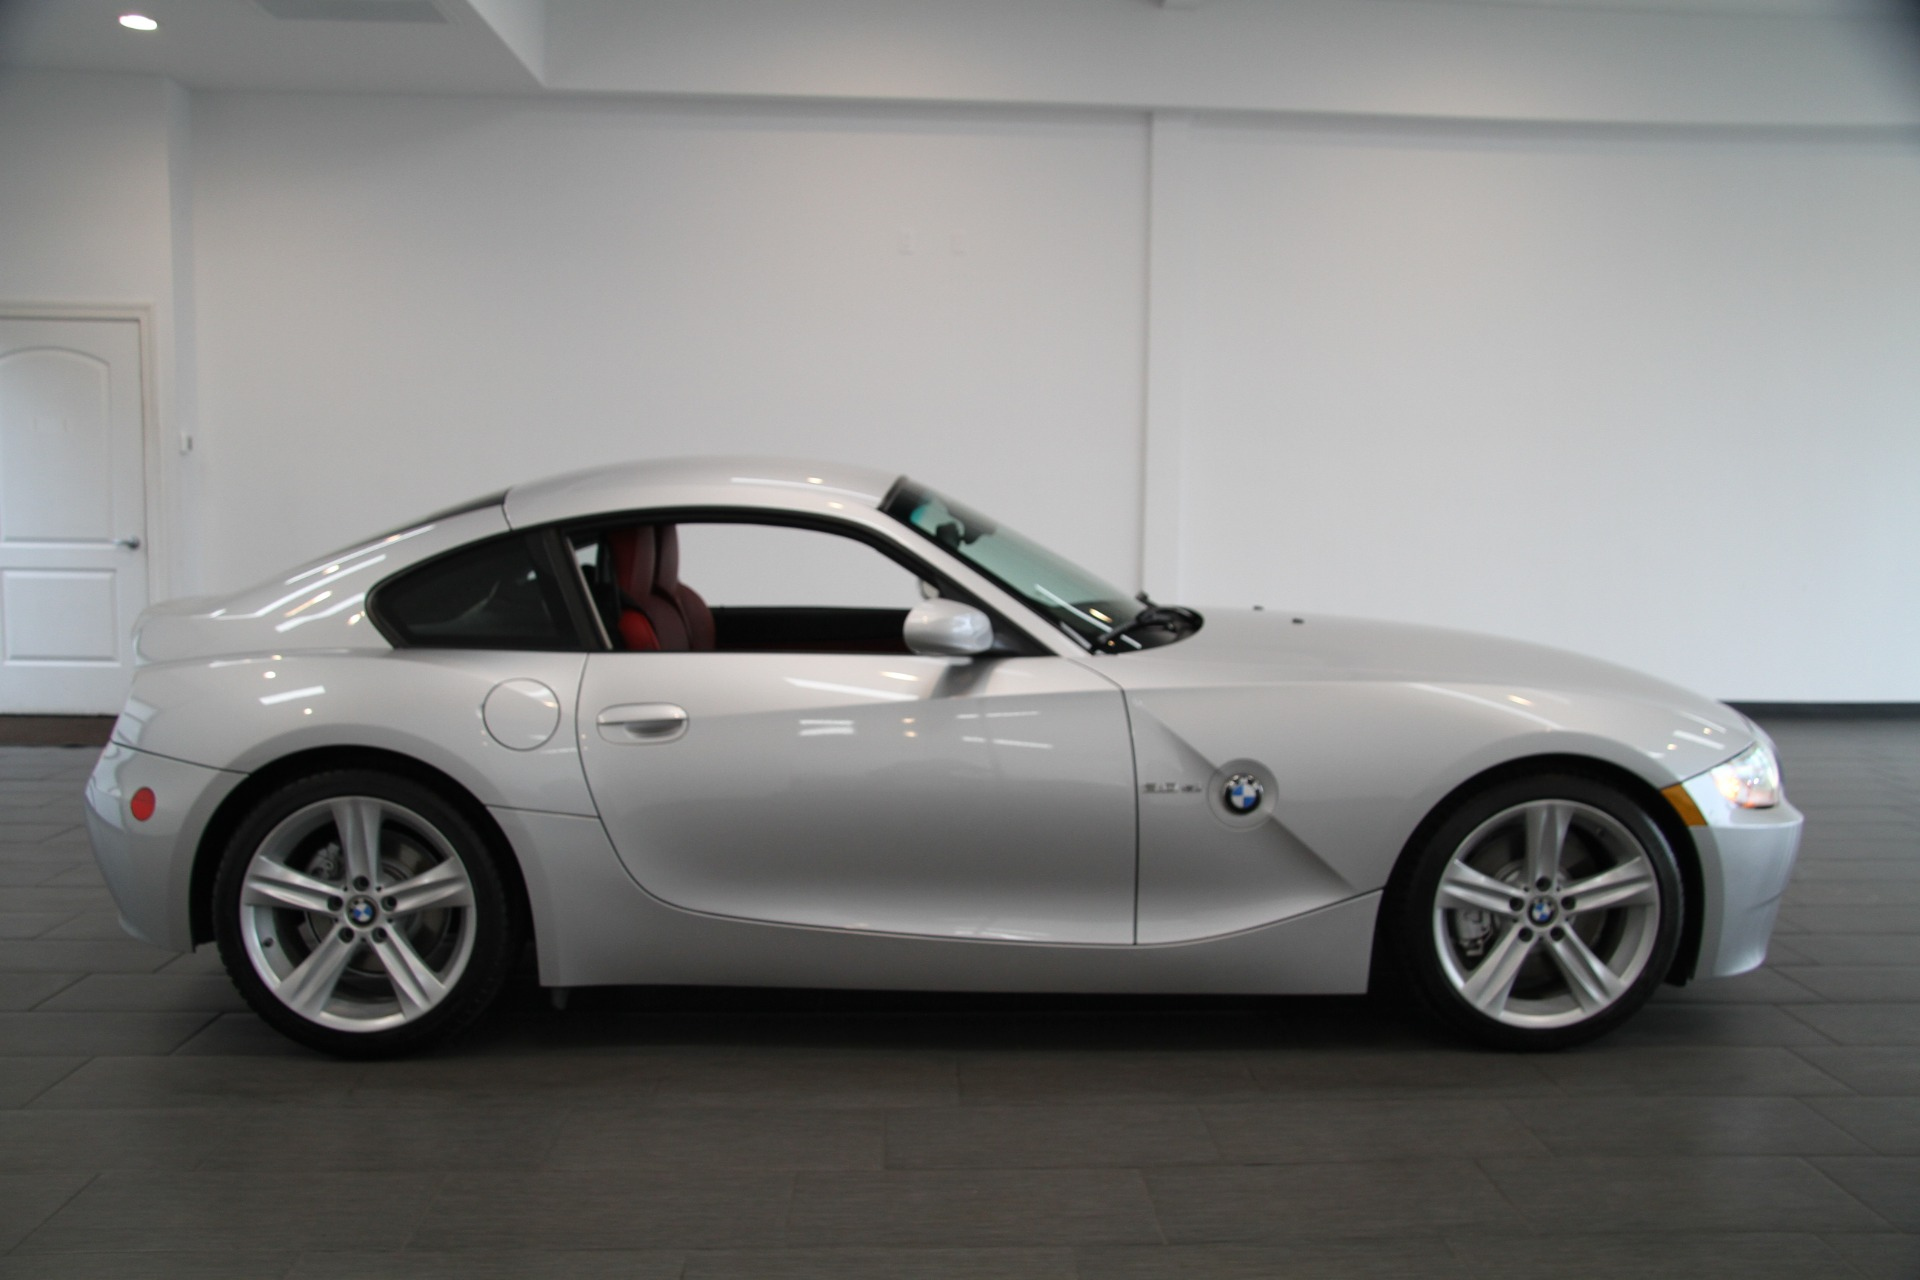 Bmw Dealership Near Me >> 2007 BMW Z4 3.0si Stock # 6055A for sale near Redondo Beach, CA | CA BMW Dealer